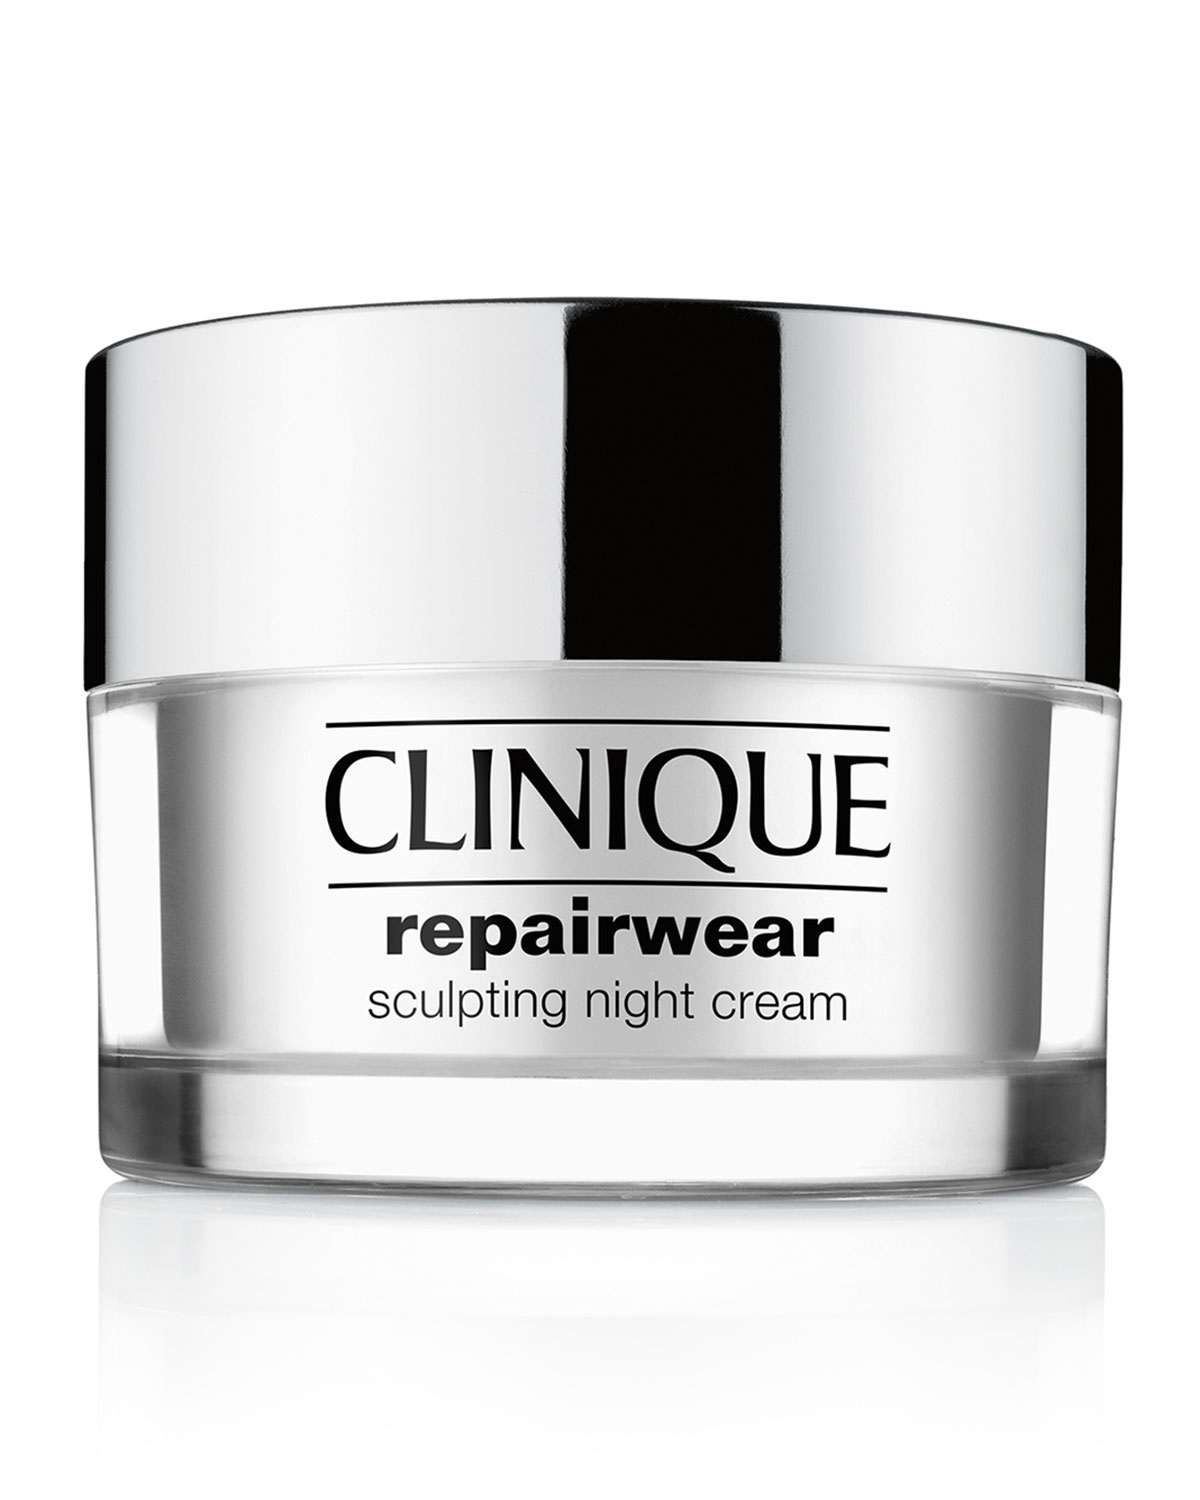 REPAIRWEAR SCULPTING NIGHT CREAM 1.7 OZ/ 50 ML